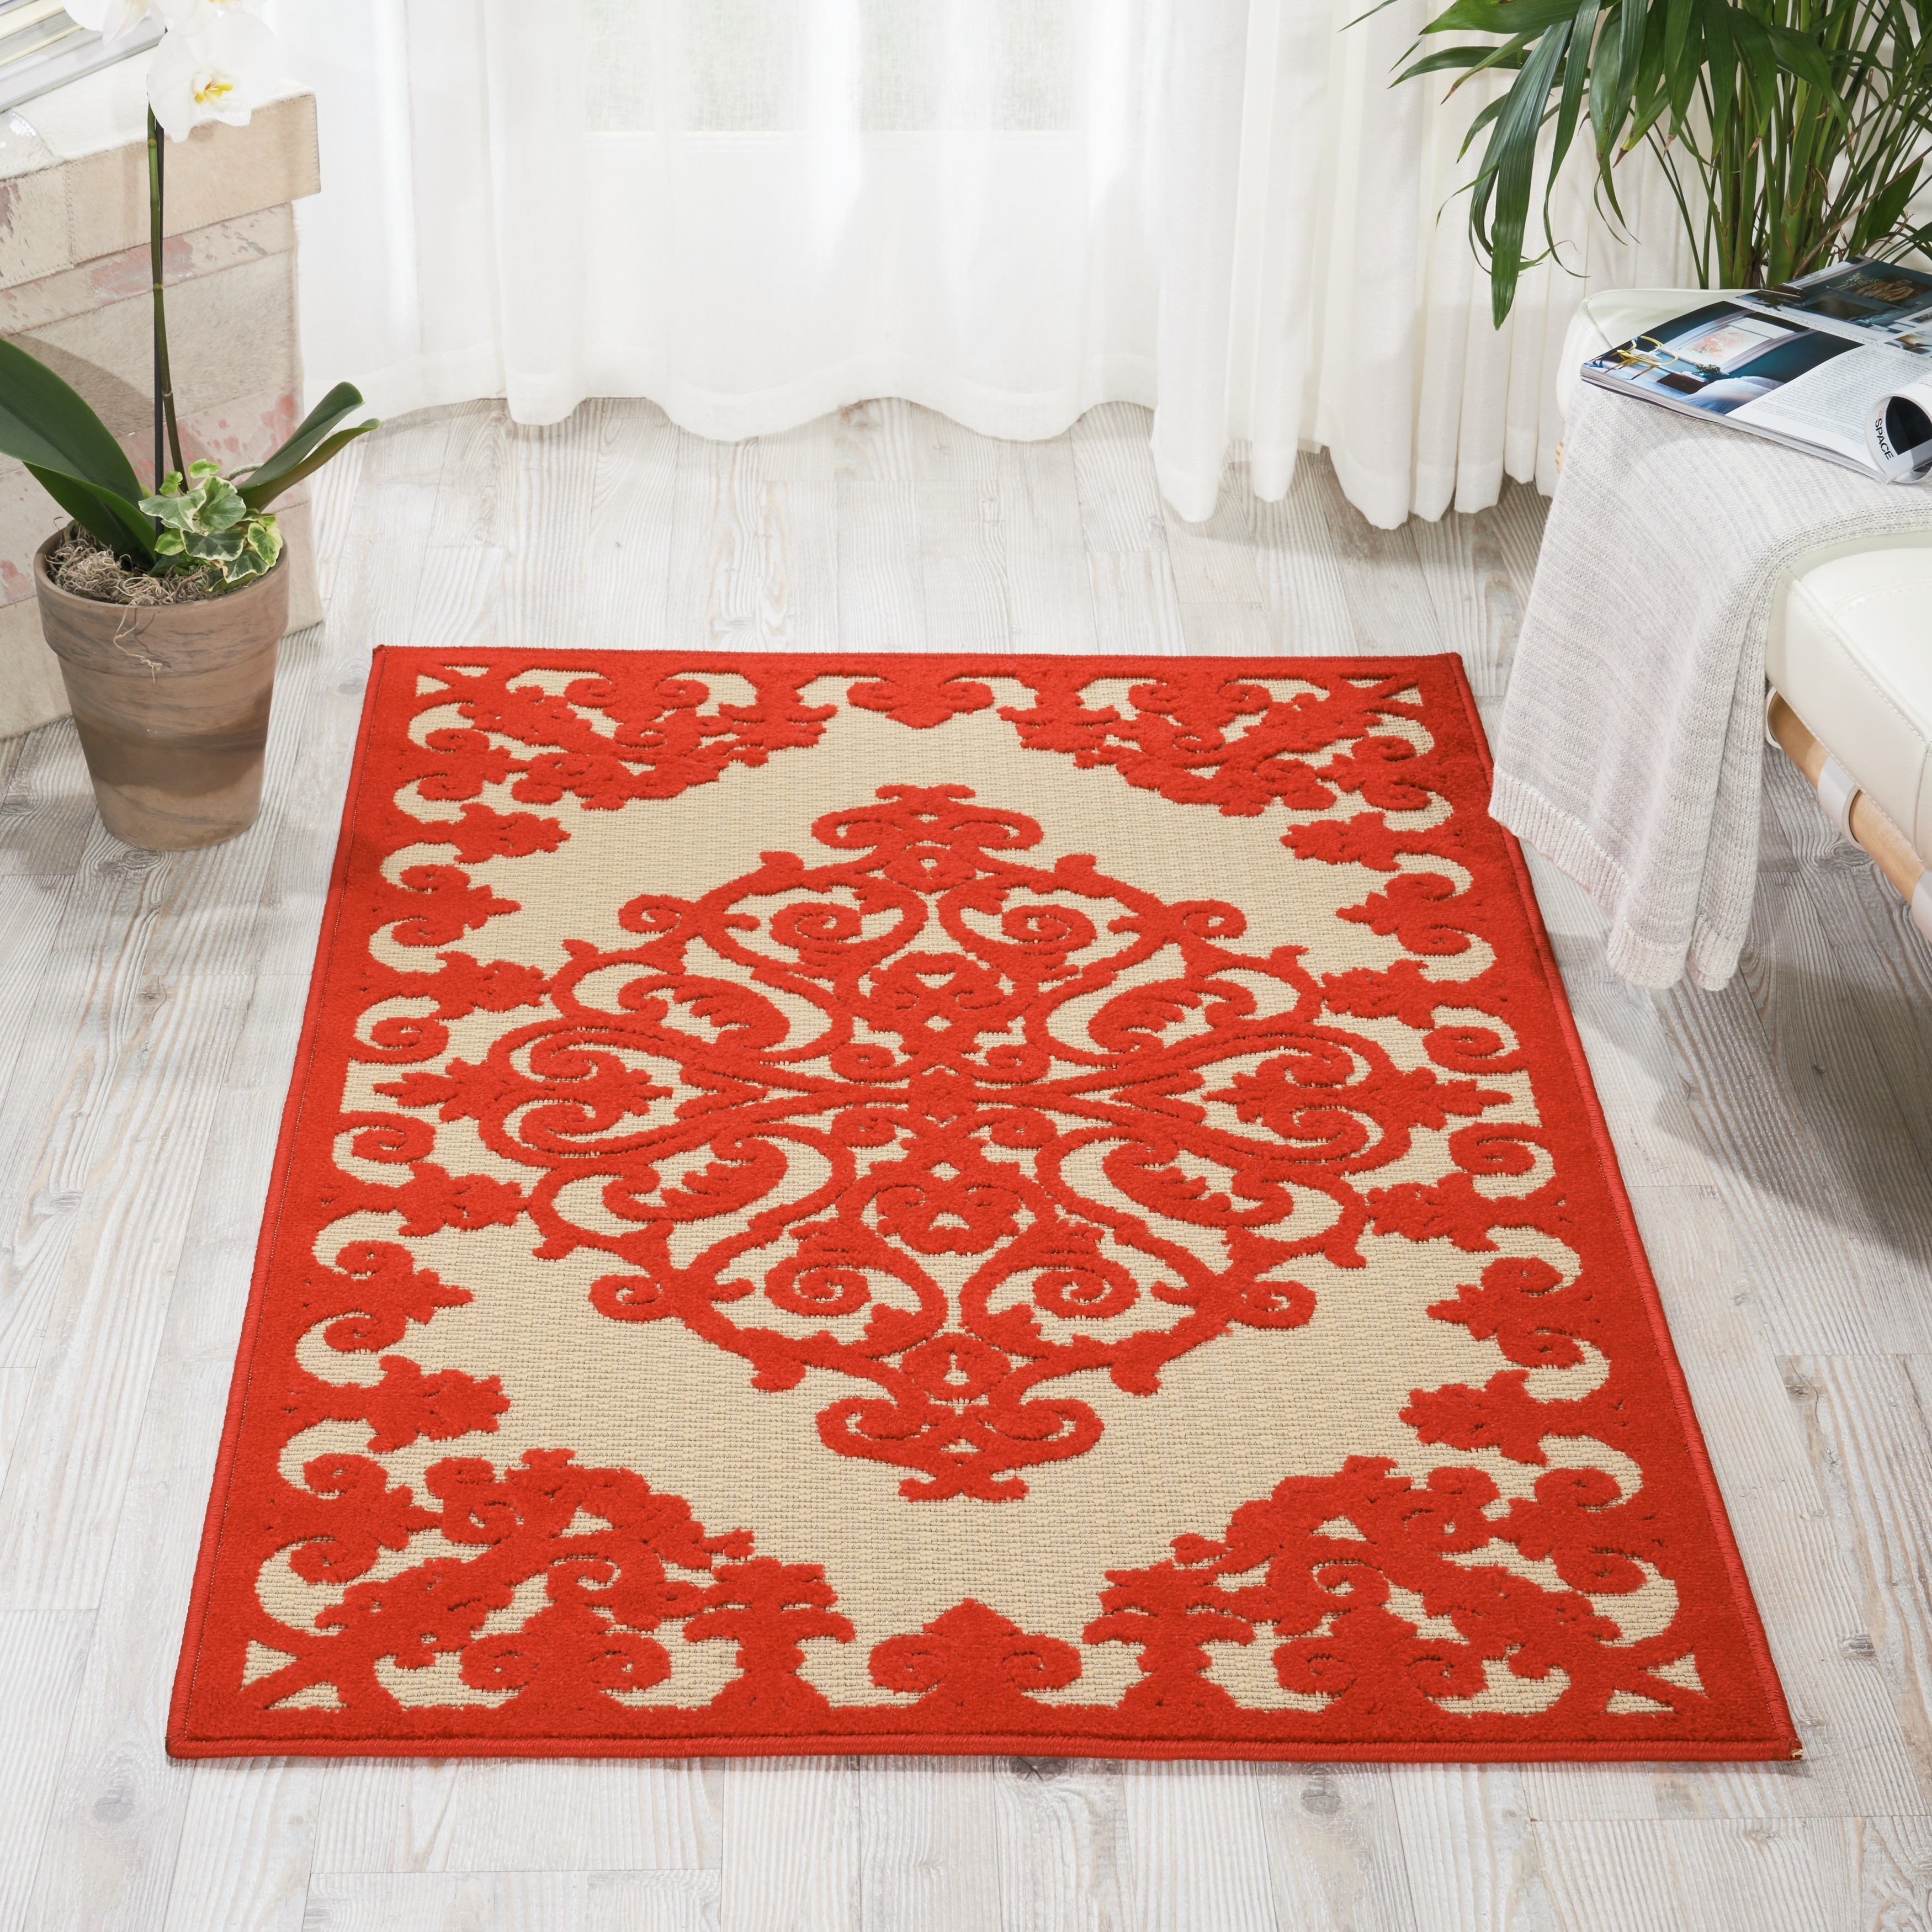 Nourison Aloha Indoor Outdoor Area Rug 3 6 X 5 Free Shipping Today 17366547